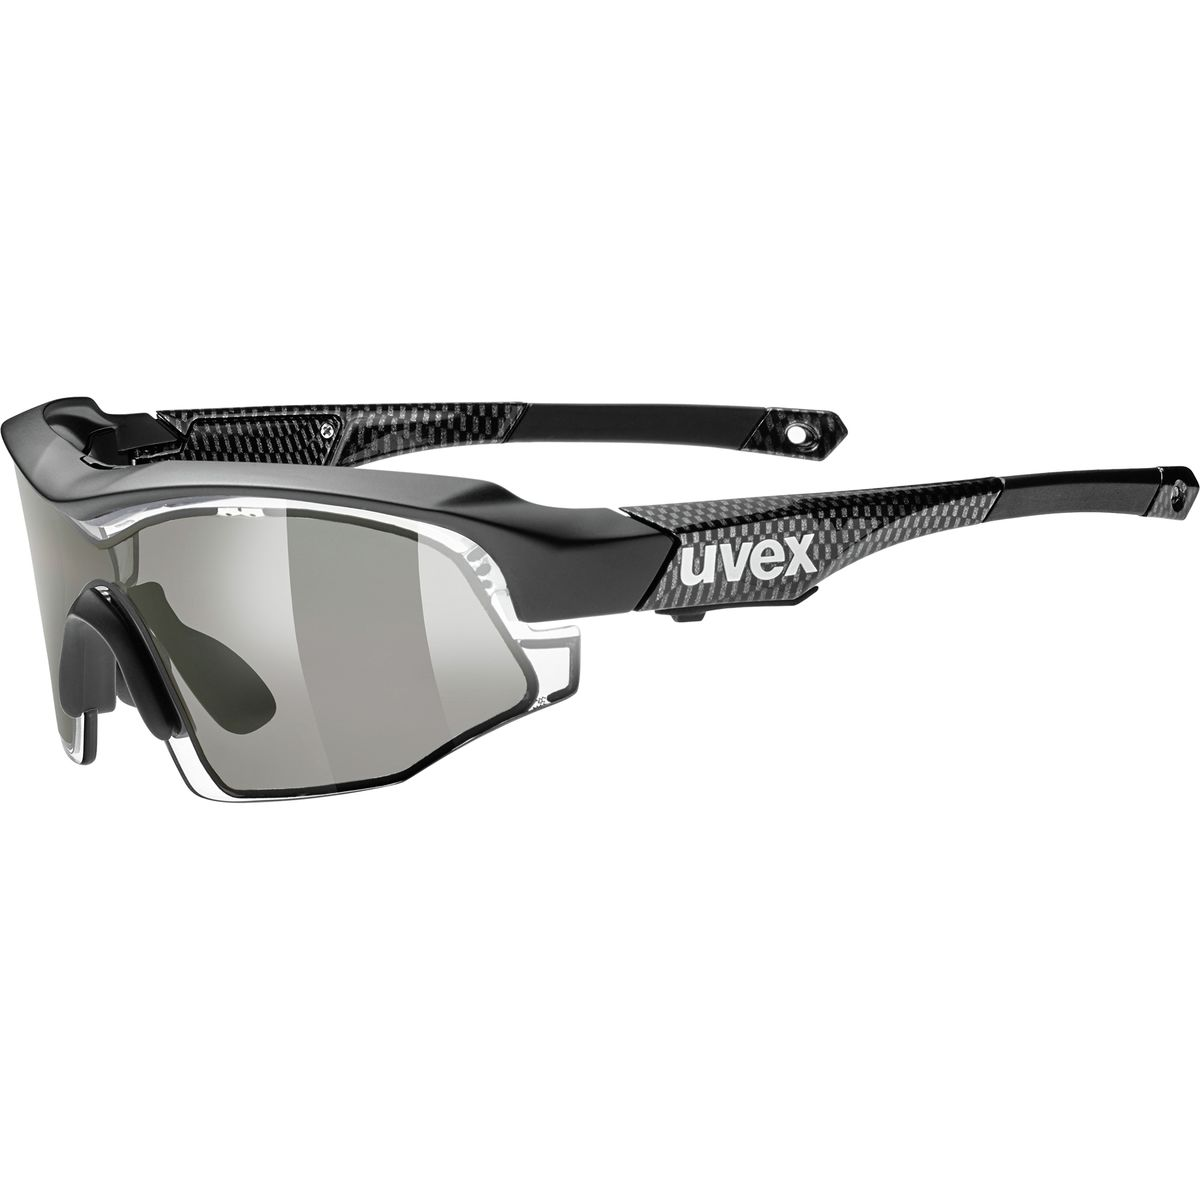 Shield Sunglasses  uvex variotronic shield sunglasses compeive cyclist